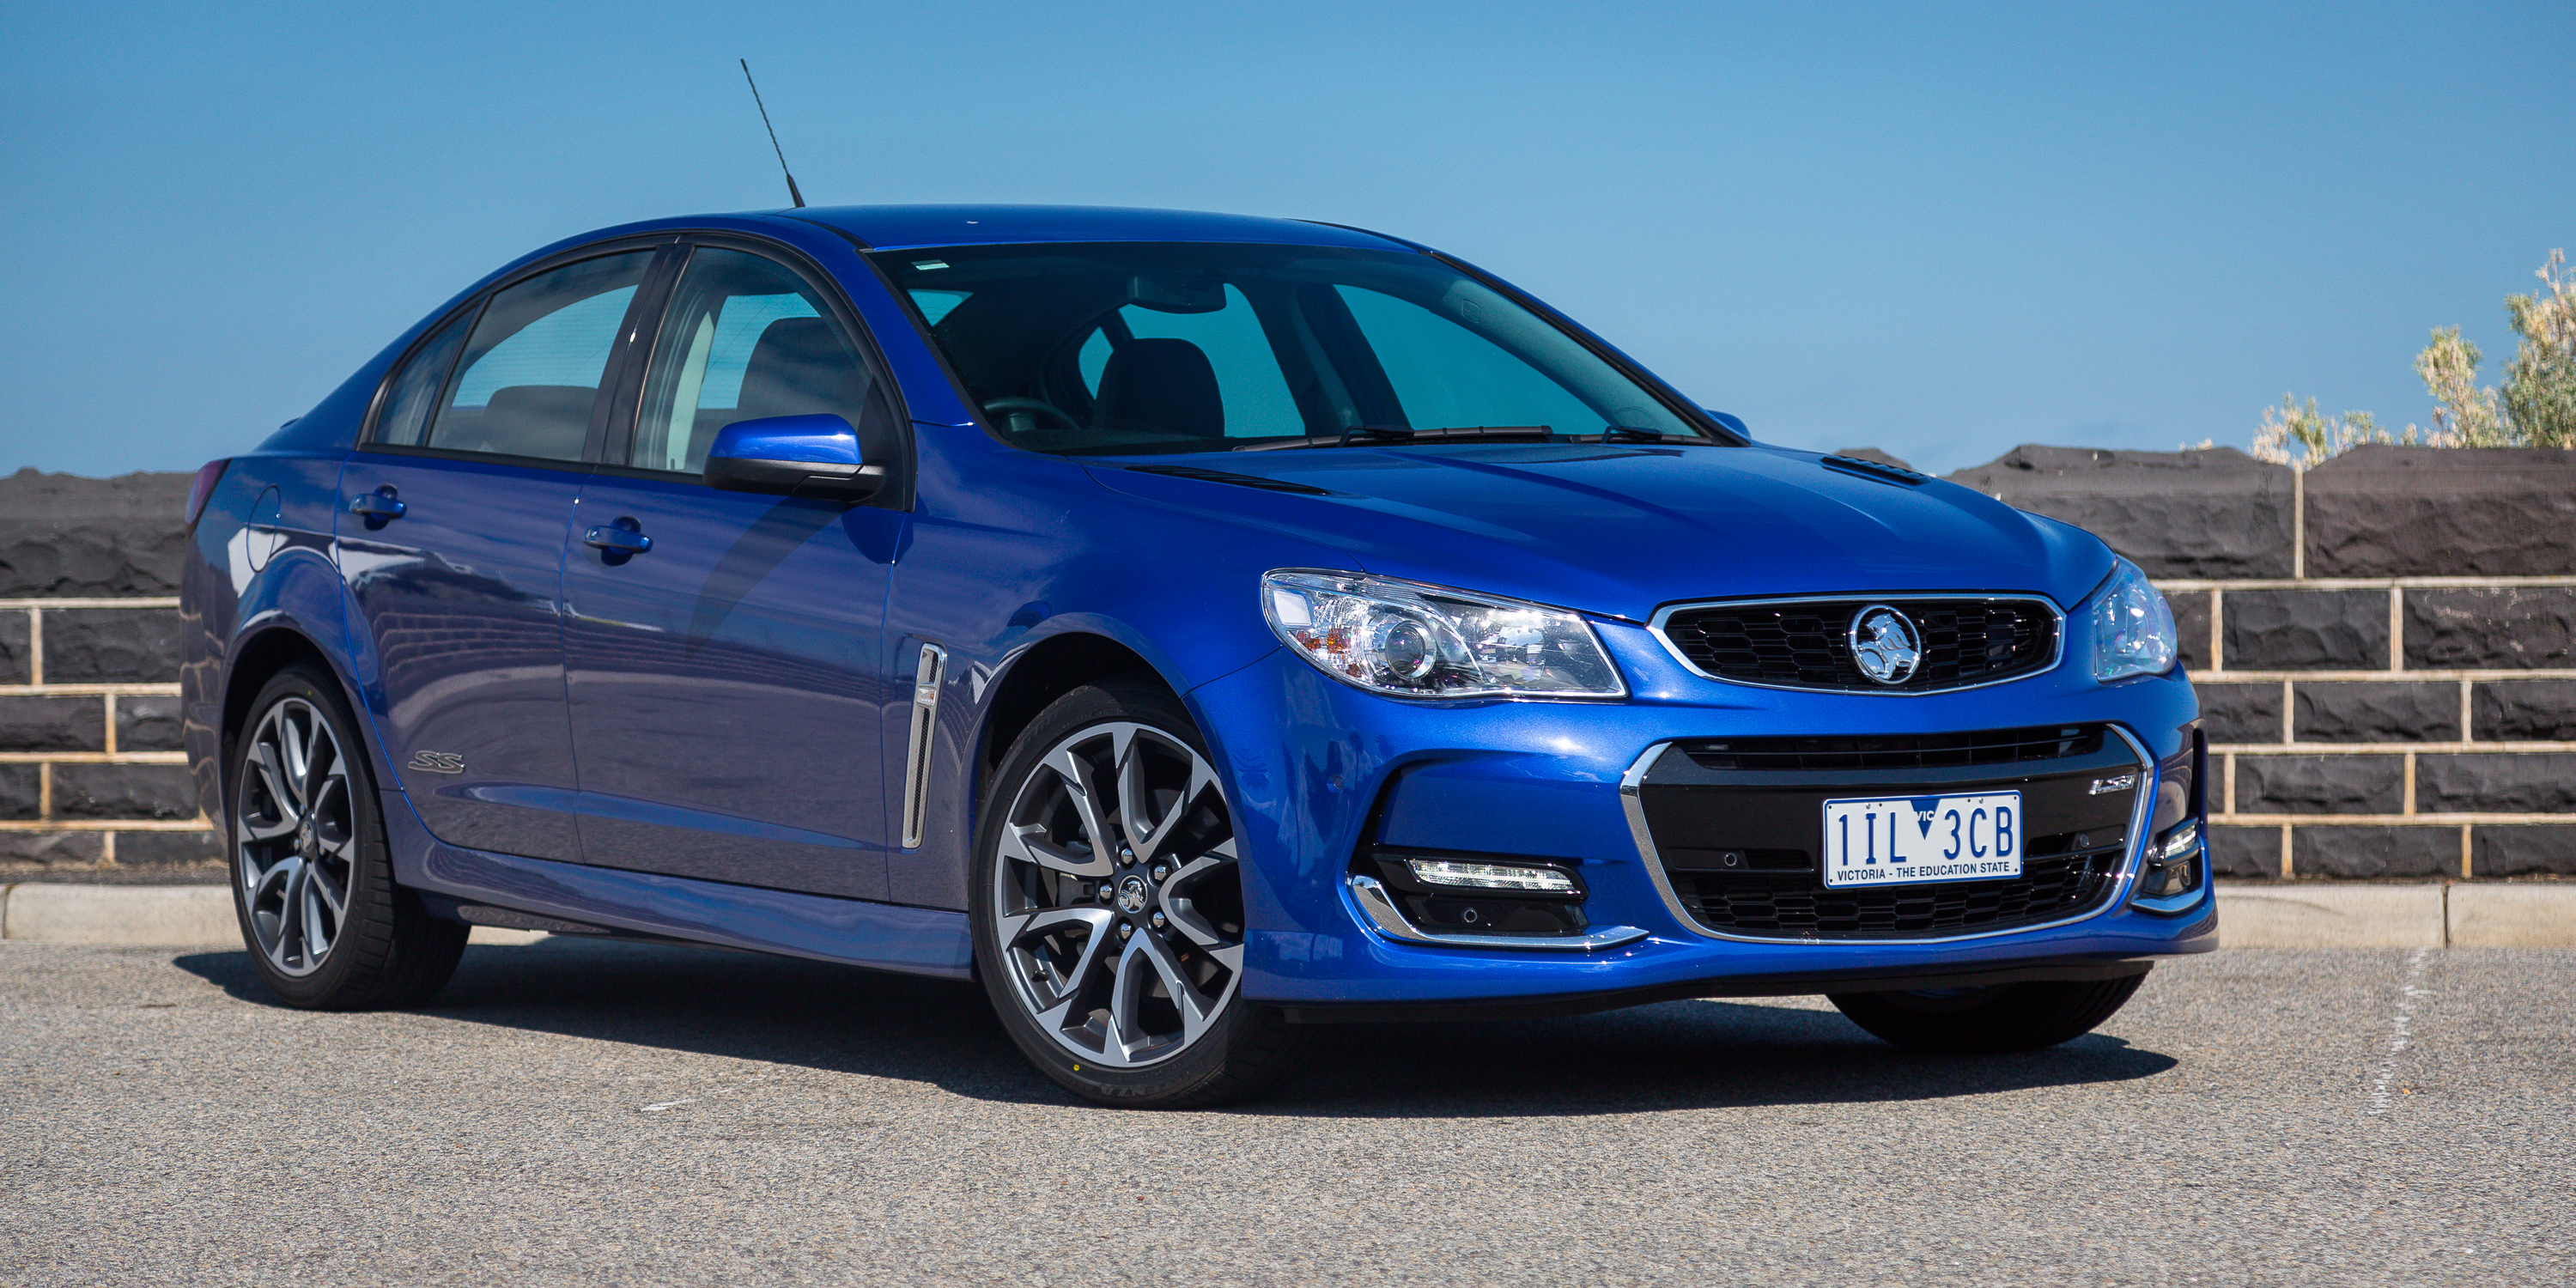 2017 Holden Commodore SS review | CarAdvice